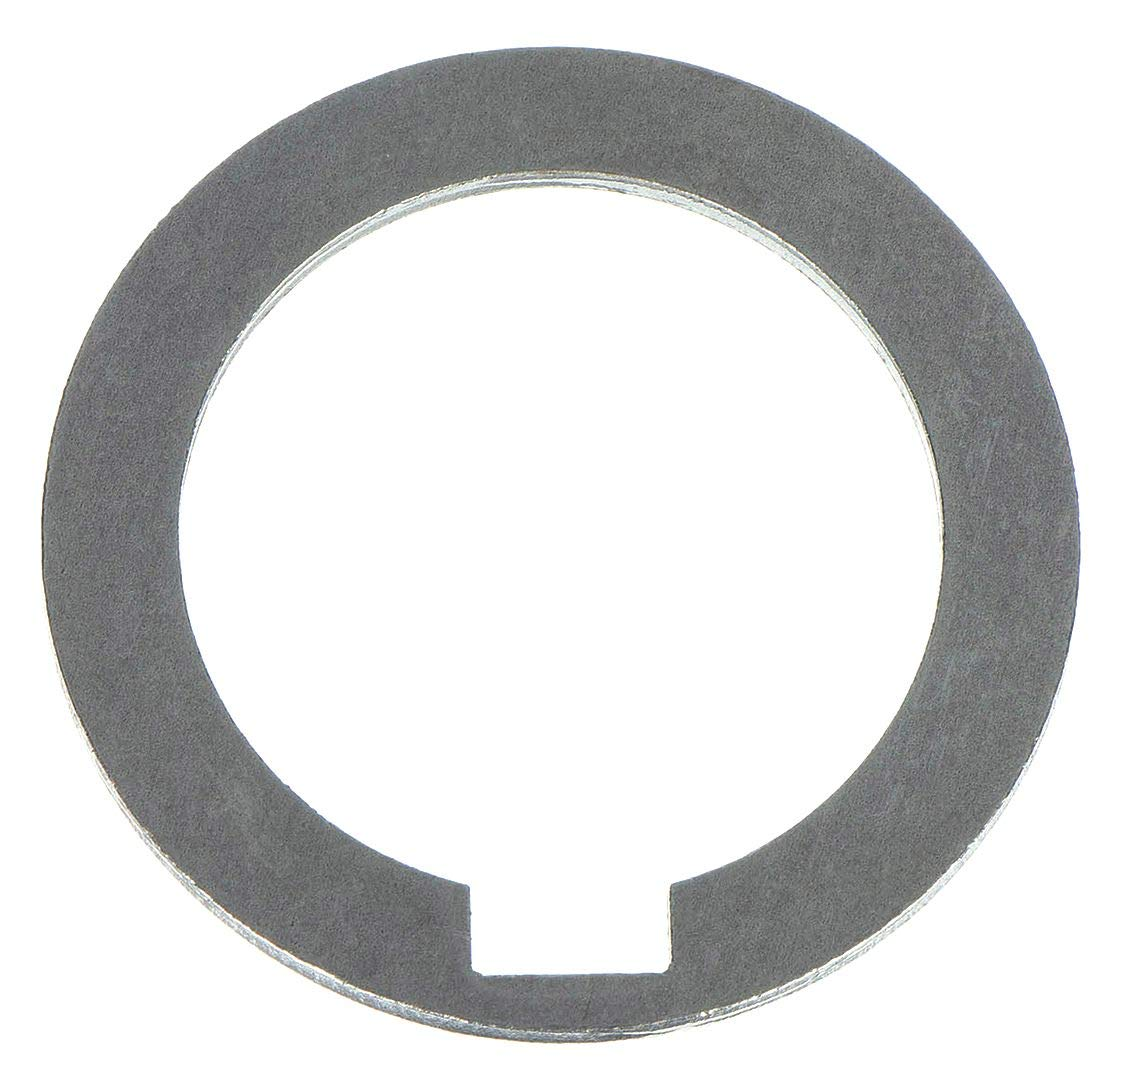 1008/1010 Carbon Steel Notched Shim, Matte Finish, Hard Temper, AISI 1008/AISI 1010, 0.125'' Thickness, 1'' ID, 1-1/2'' OD (Pack of 10) by Small Parts